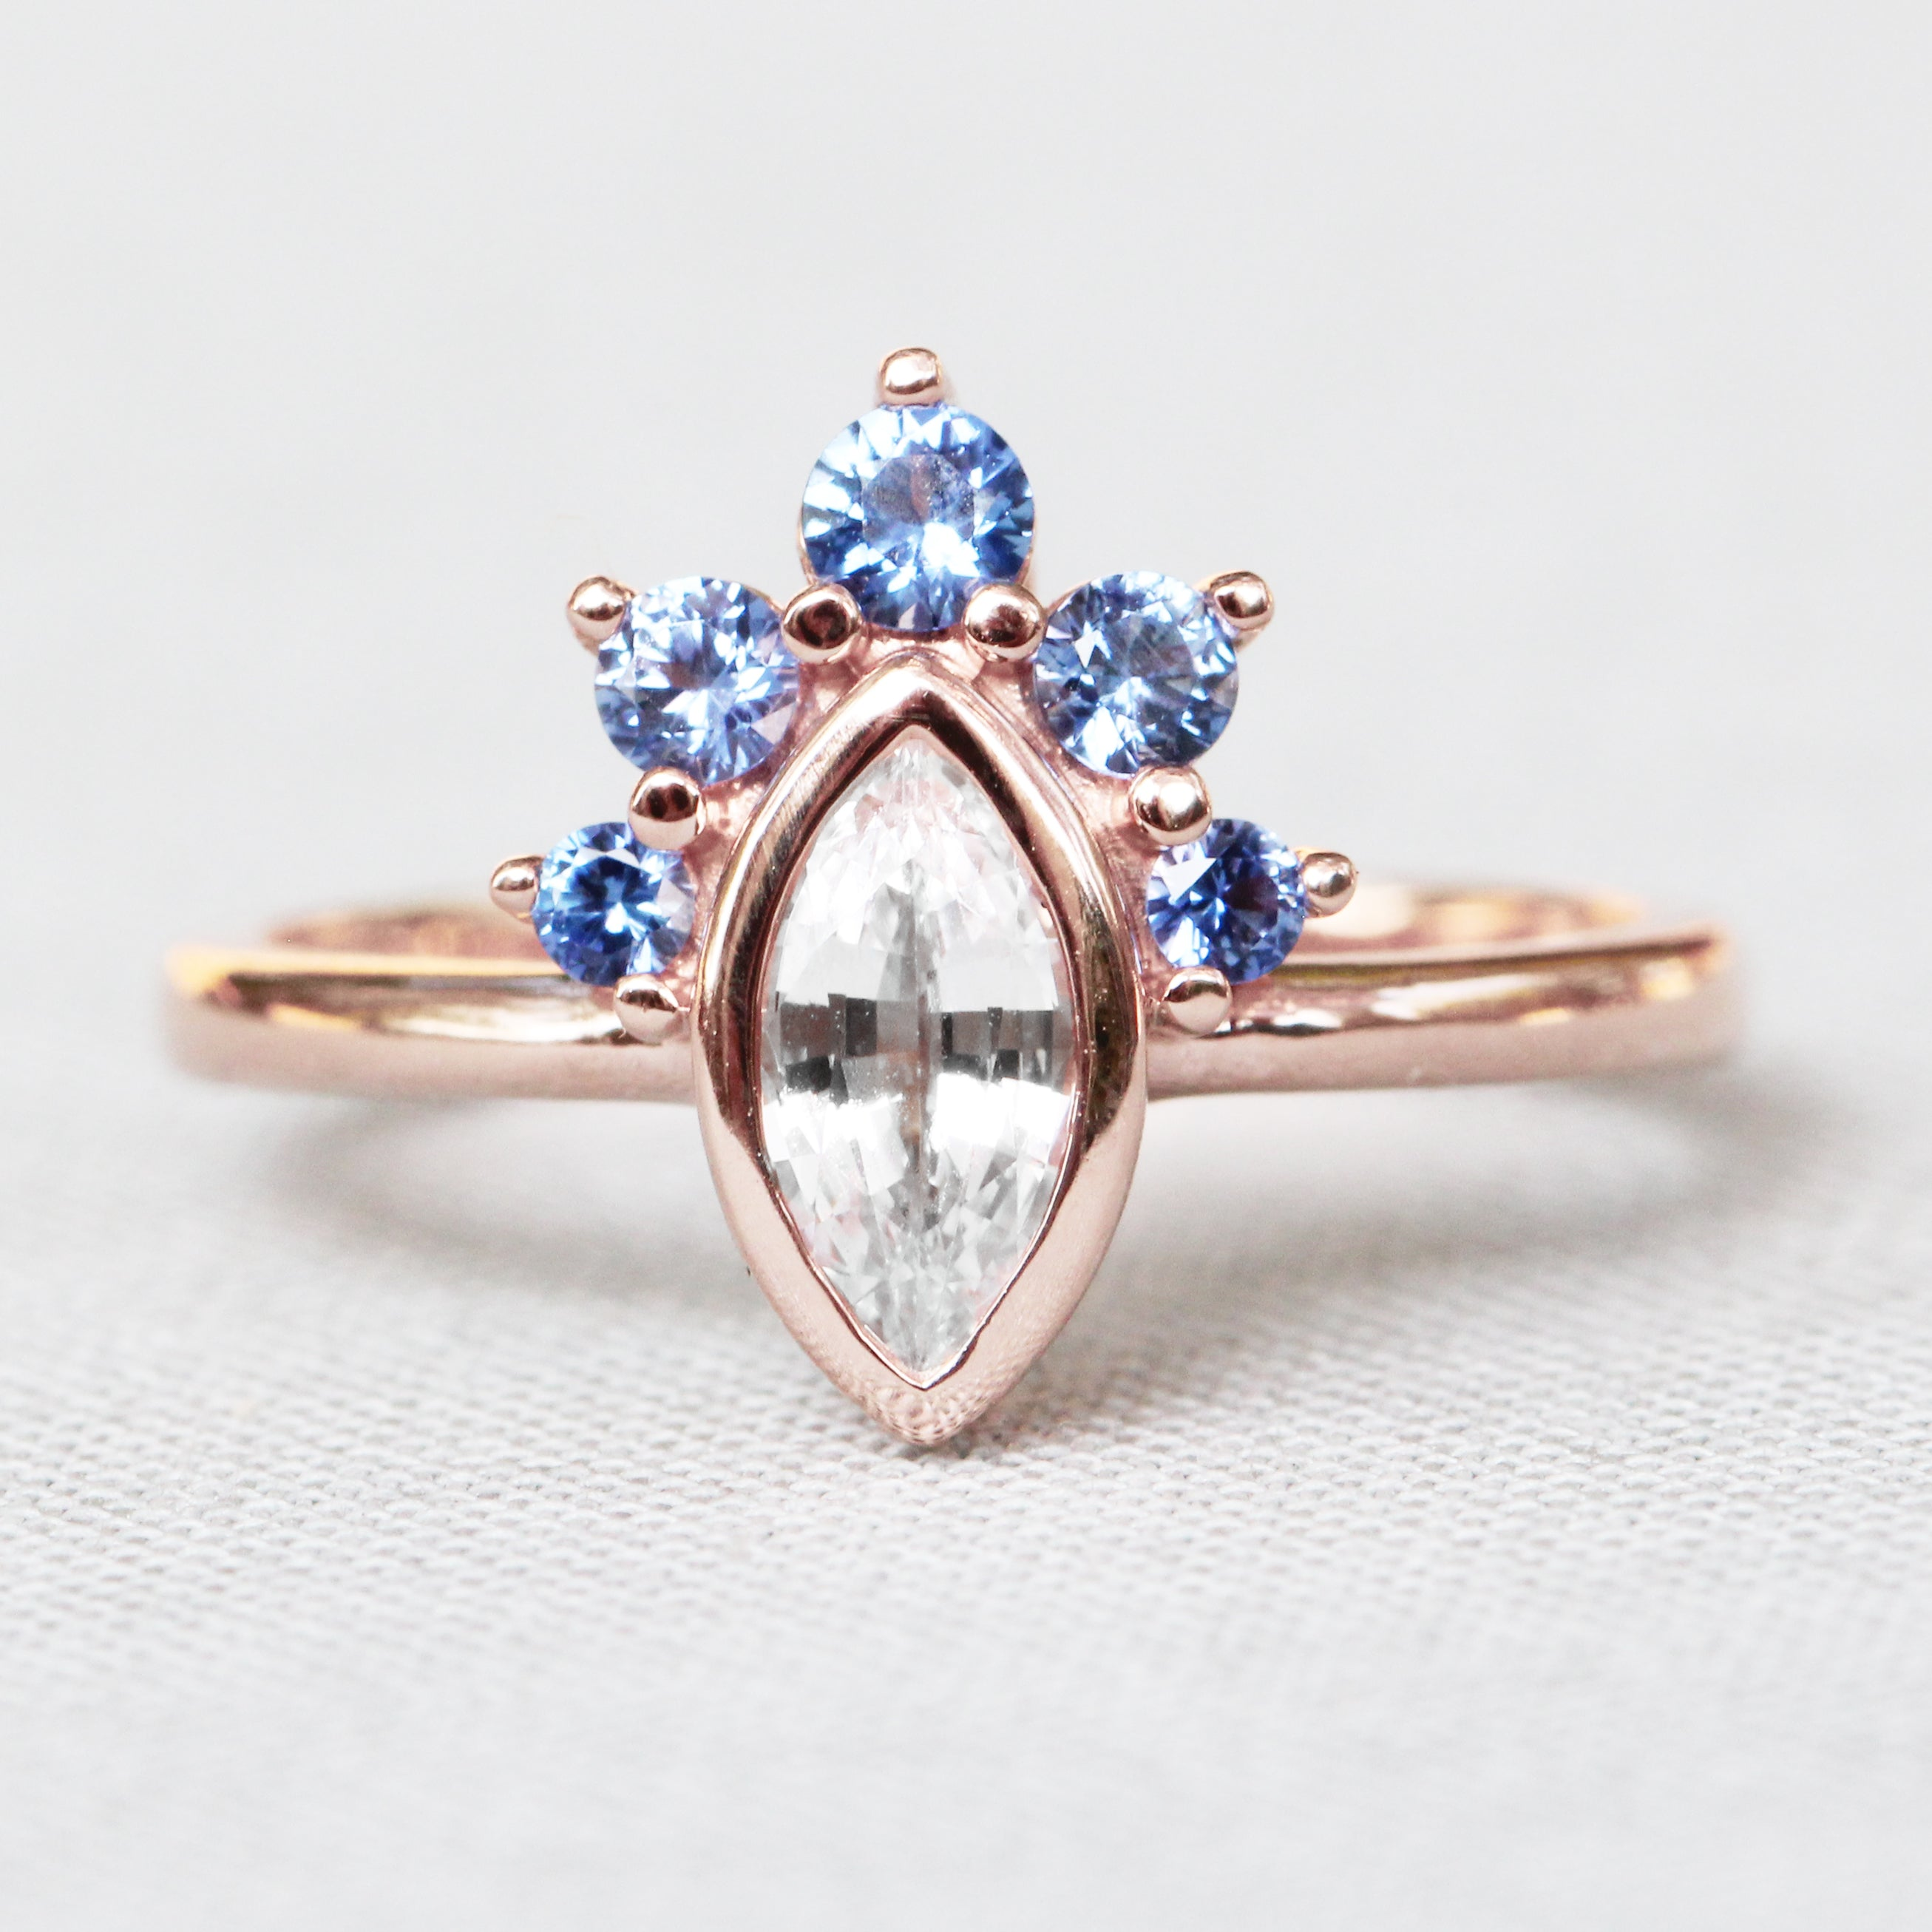 Ashlyn Ring with White Sapphire and Ceylon Blue Sapphires in 14k Rose Gold